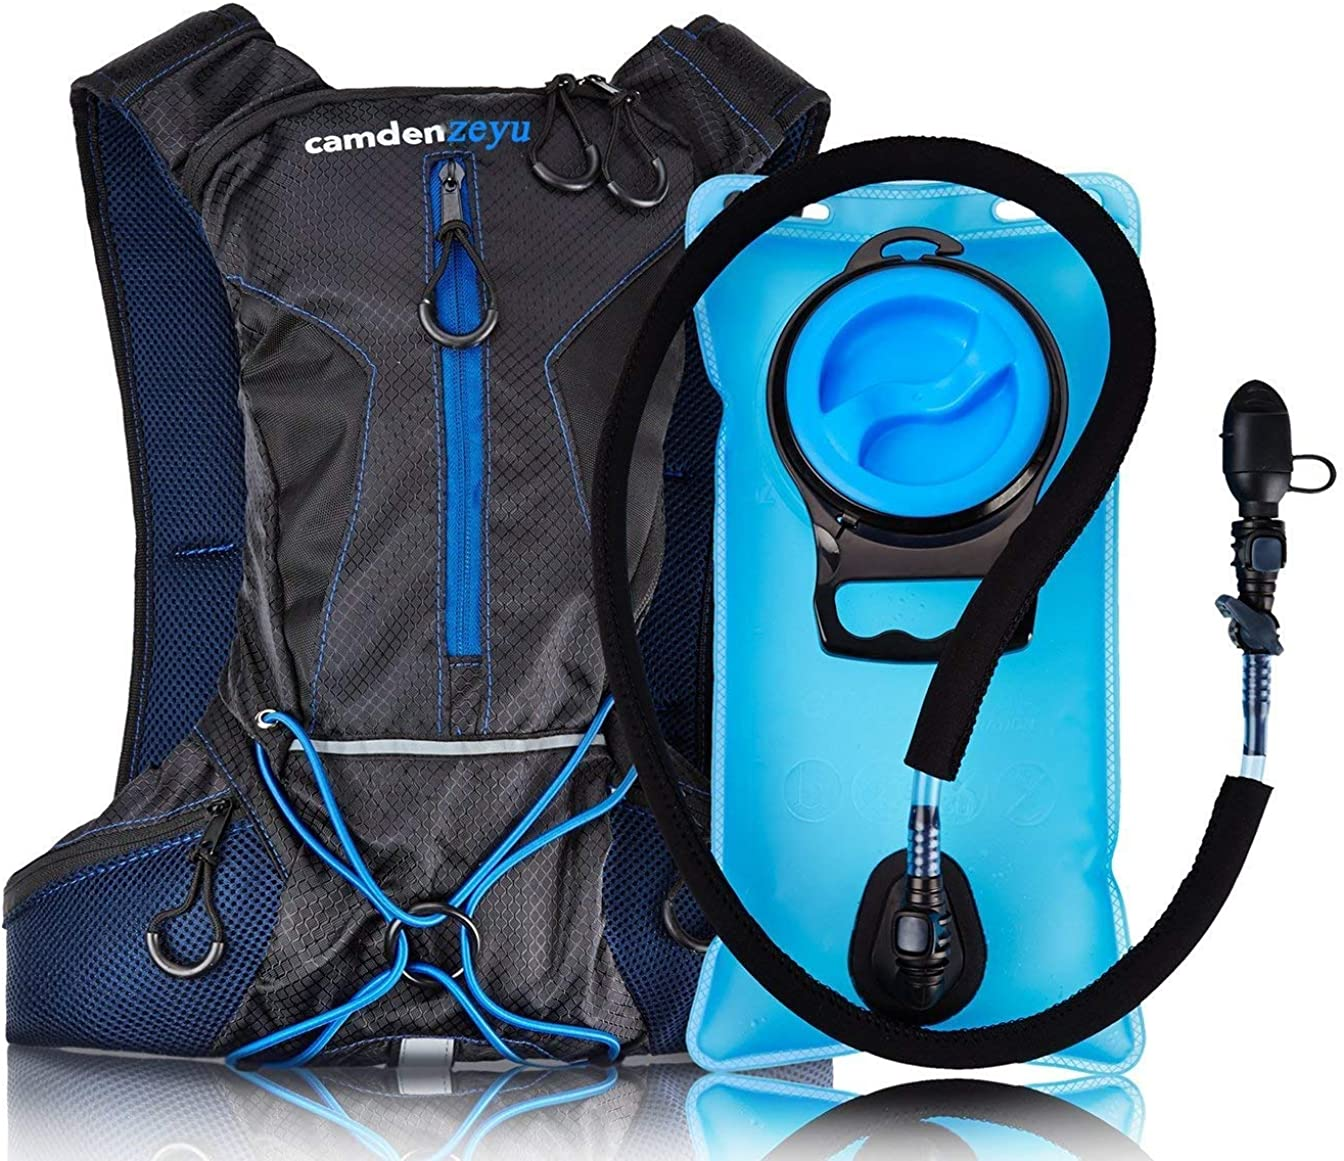 Camden Gear Zeyu Hydration Backpack Running B Special Super beauty product restock quality top! Campaign 2L 1.5 with Water